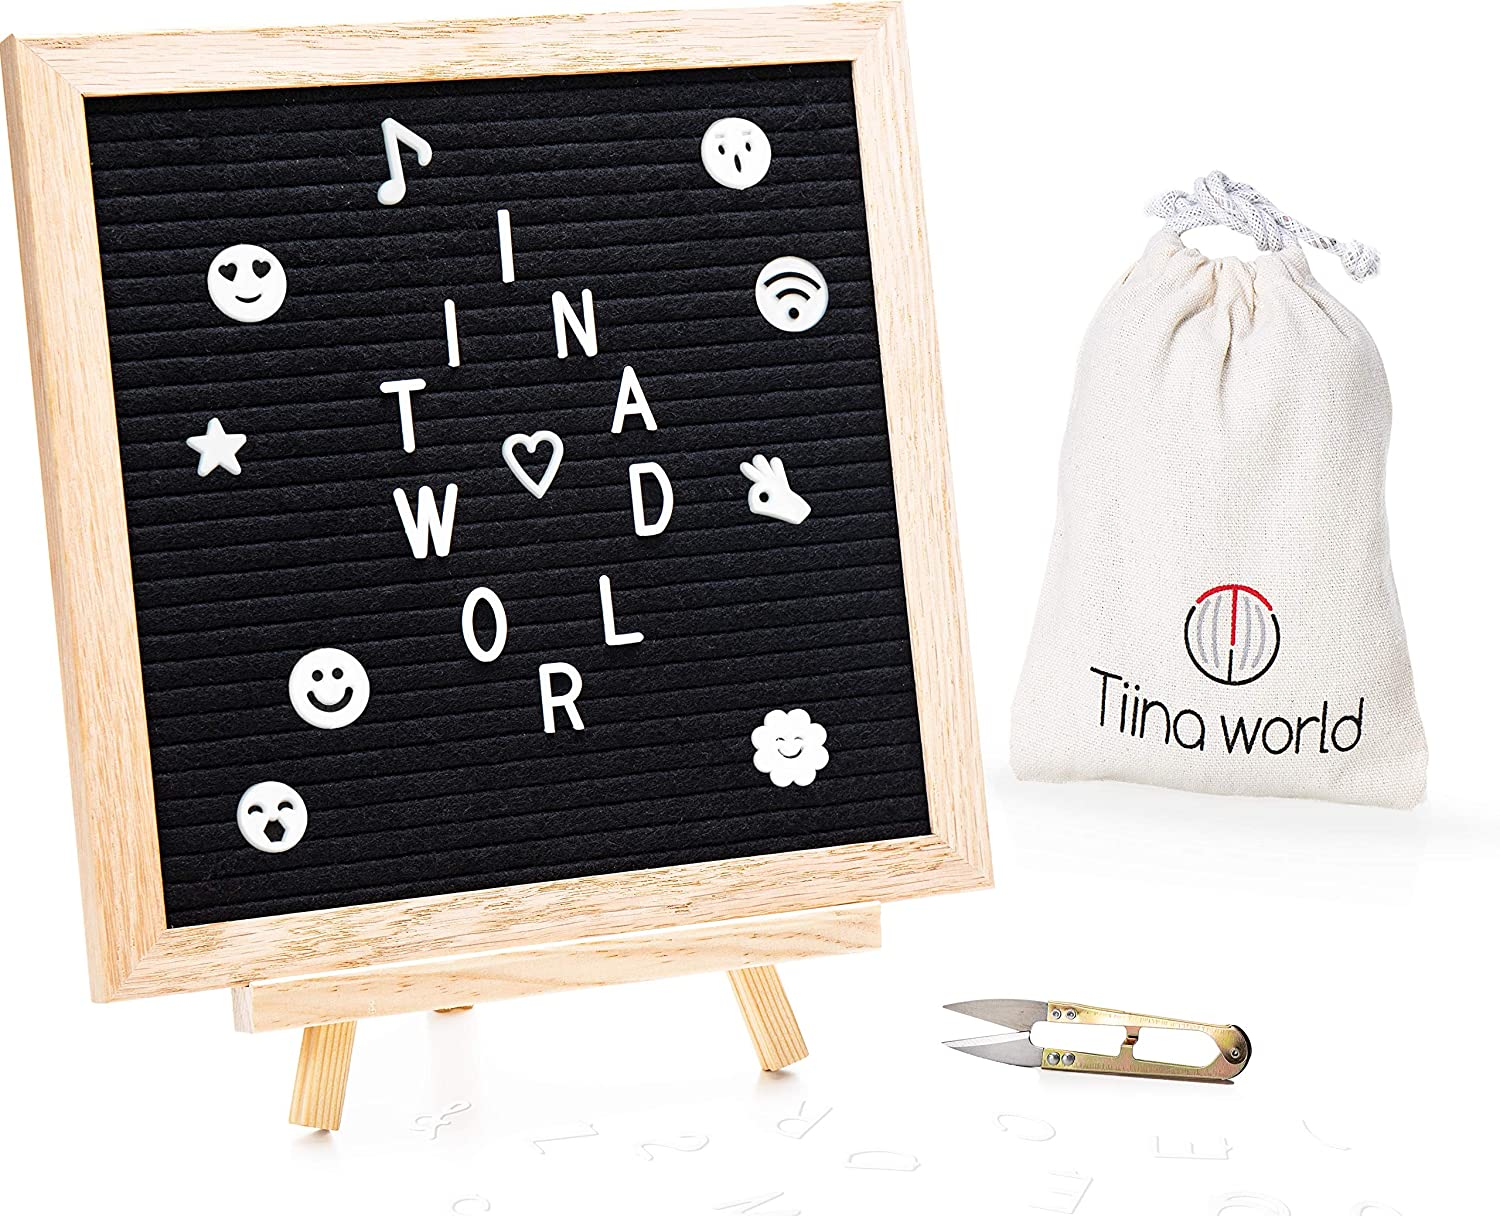 Felt Letter Board with Stand by Tiina World - Set Includes 10x10 Oak Frames, 340 White Letters, Symbols, Numbers, Characters & Emojis, Wooden Easel, Storage Bag - Best Message Home Decor and Gift